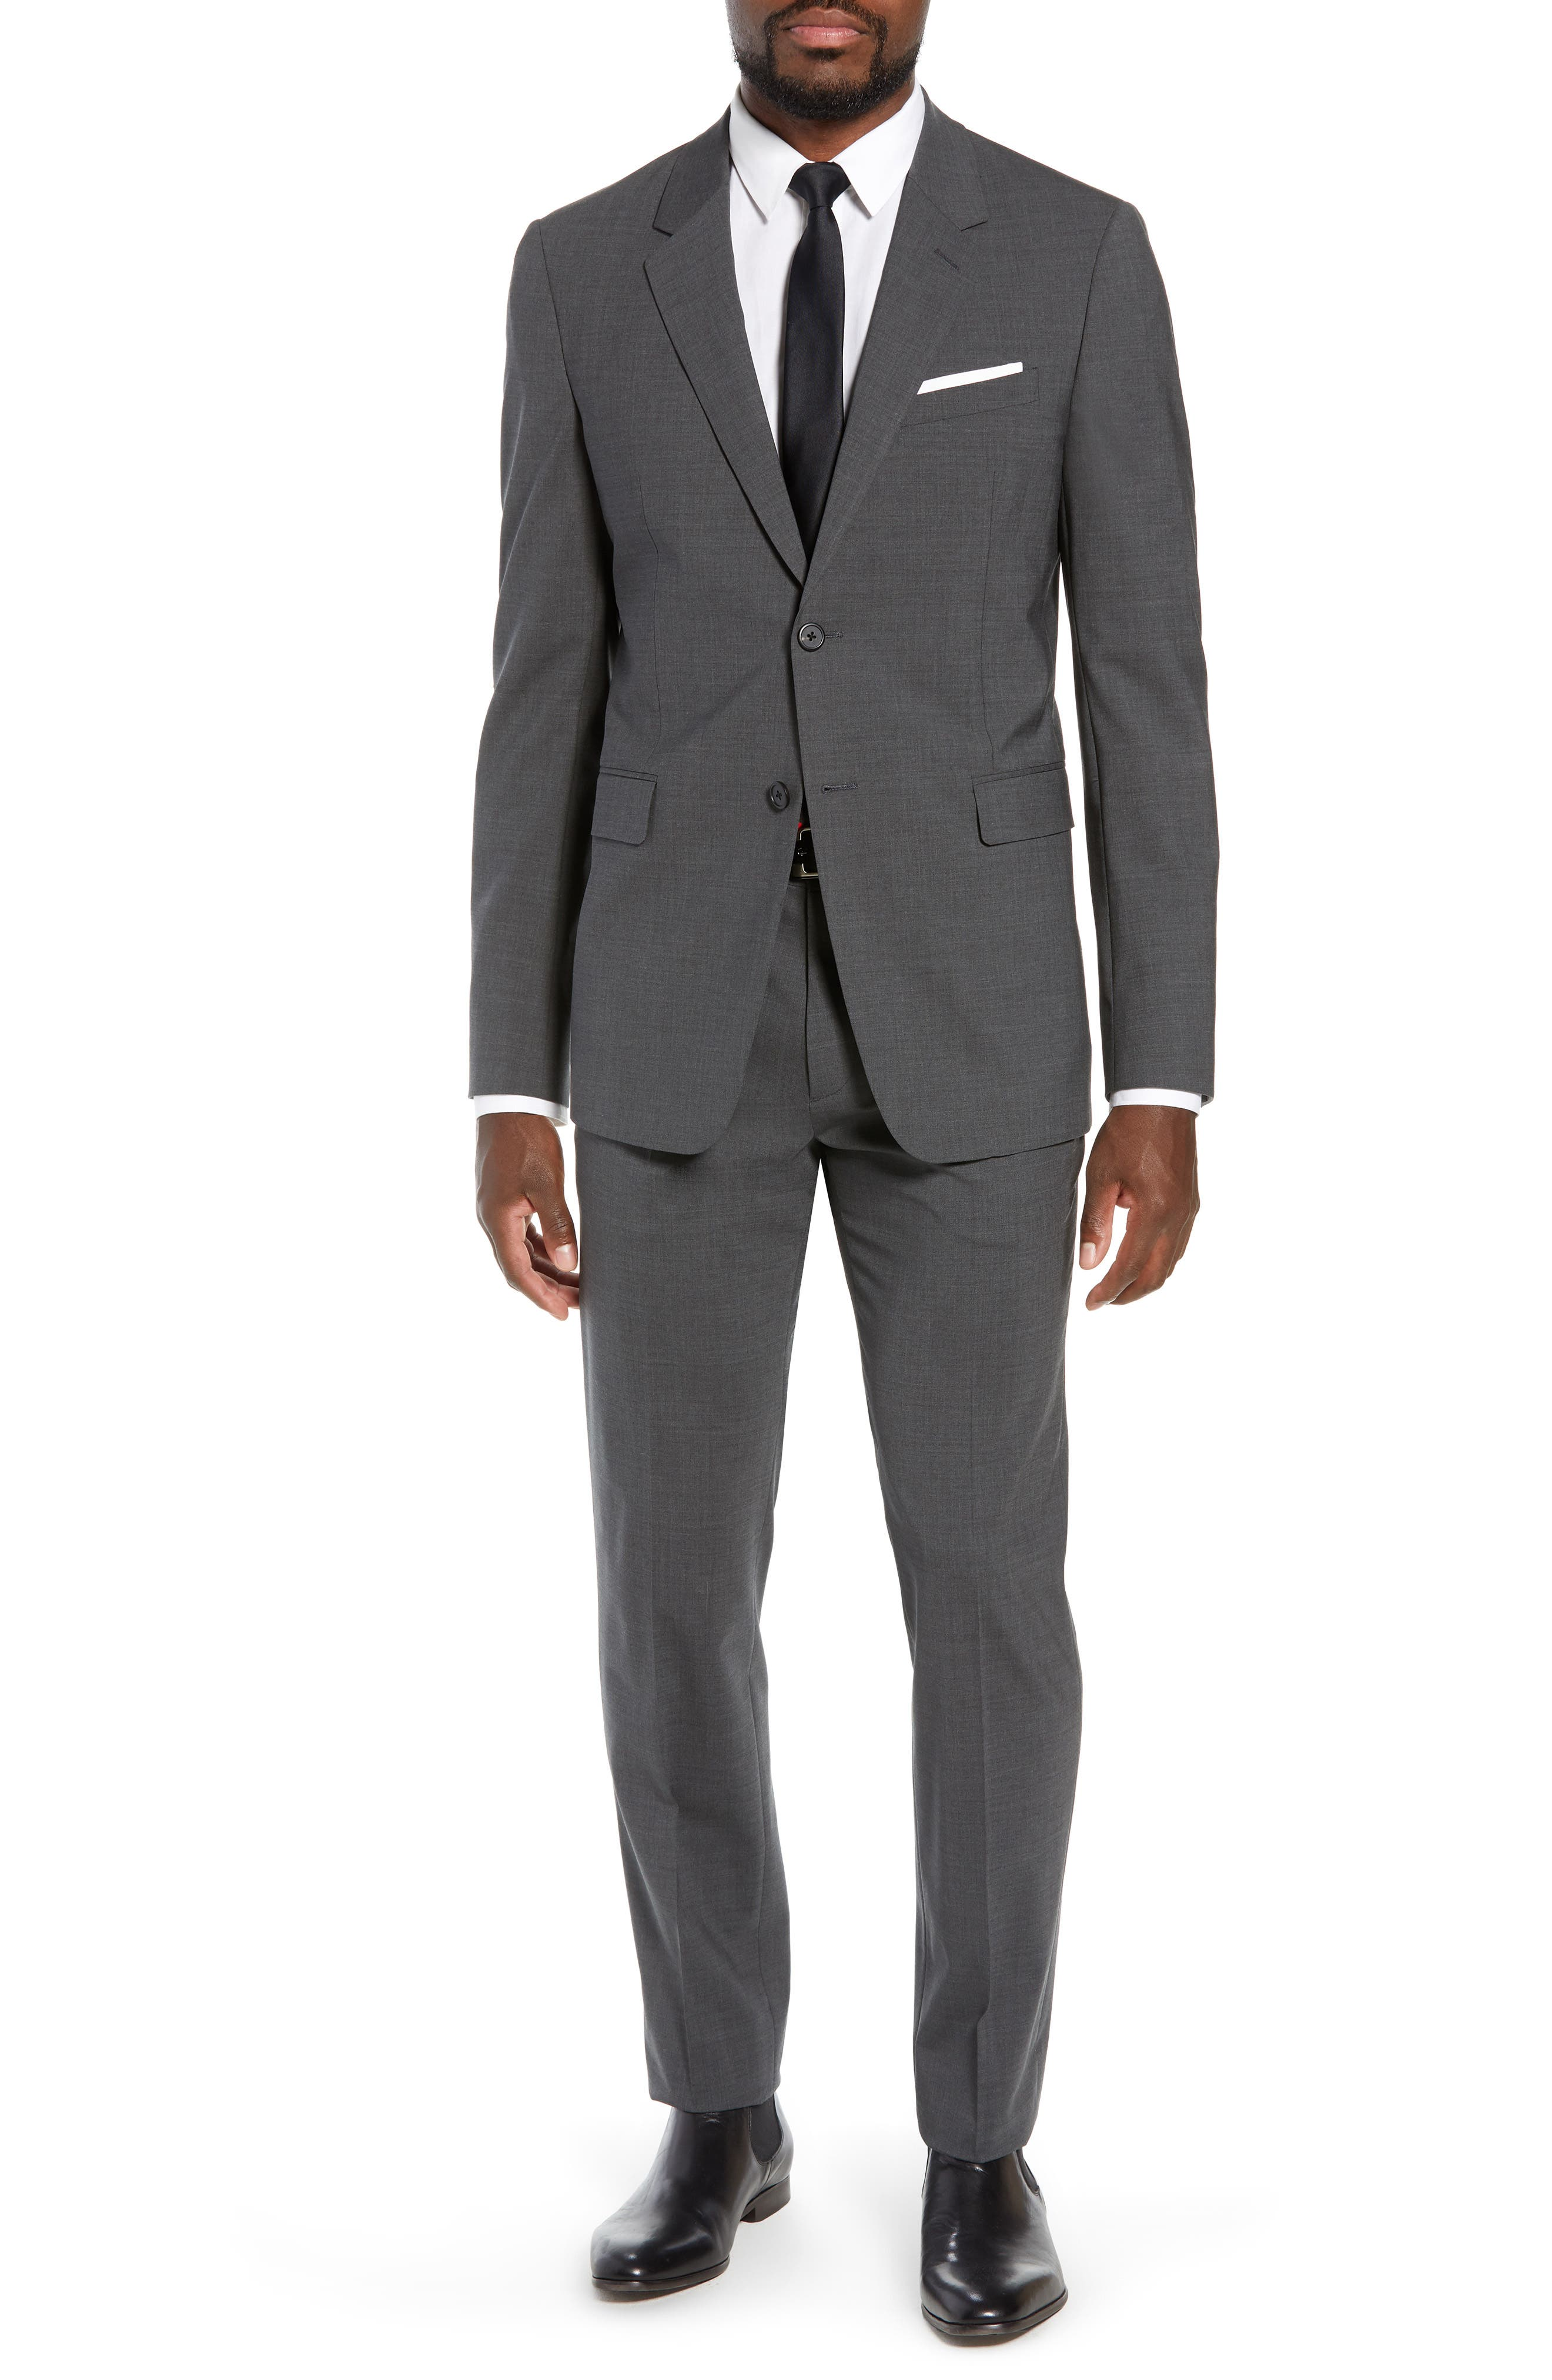 Mayer New Tailor 2 Wool Trousers,                             Alternate thumbnail 7, color,                             CHARCOAL